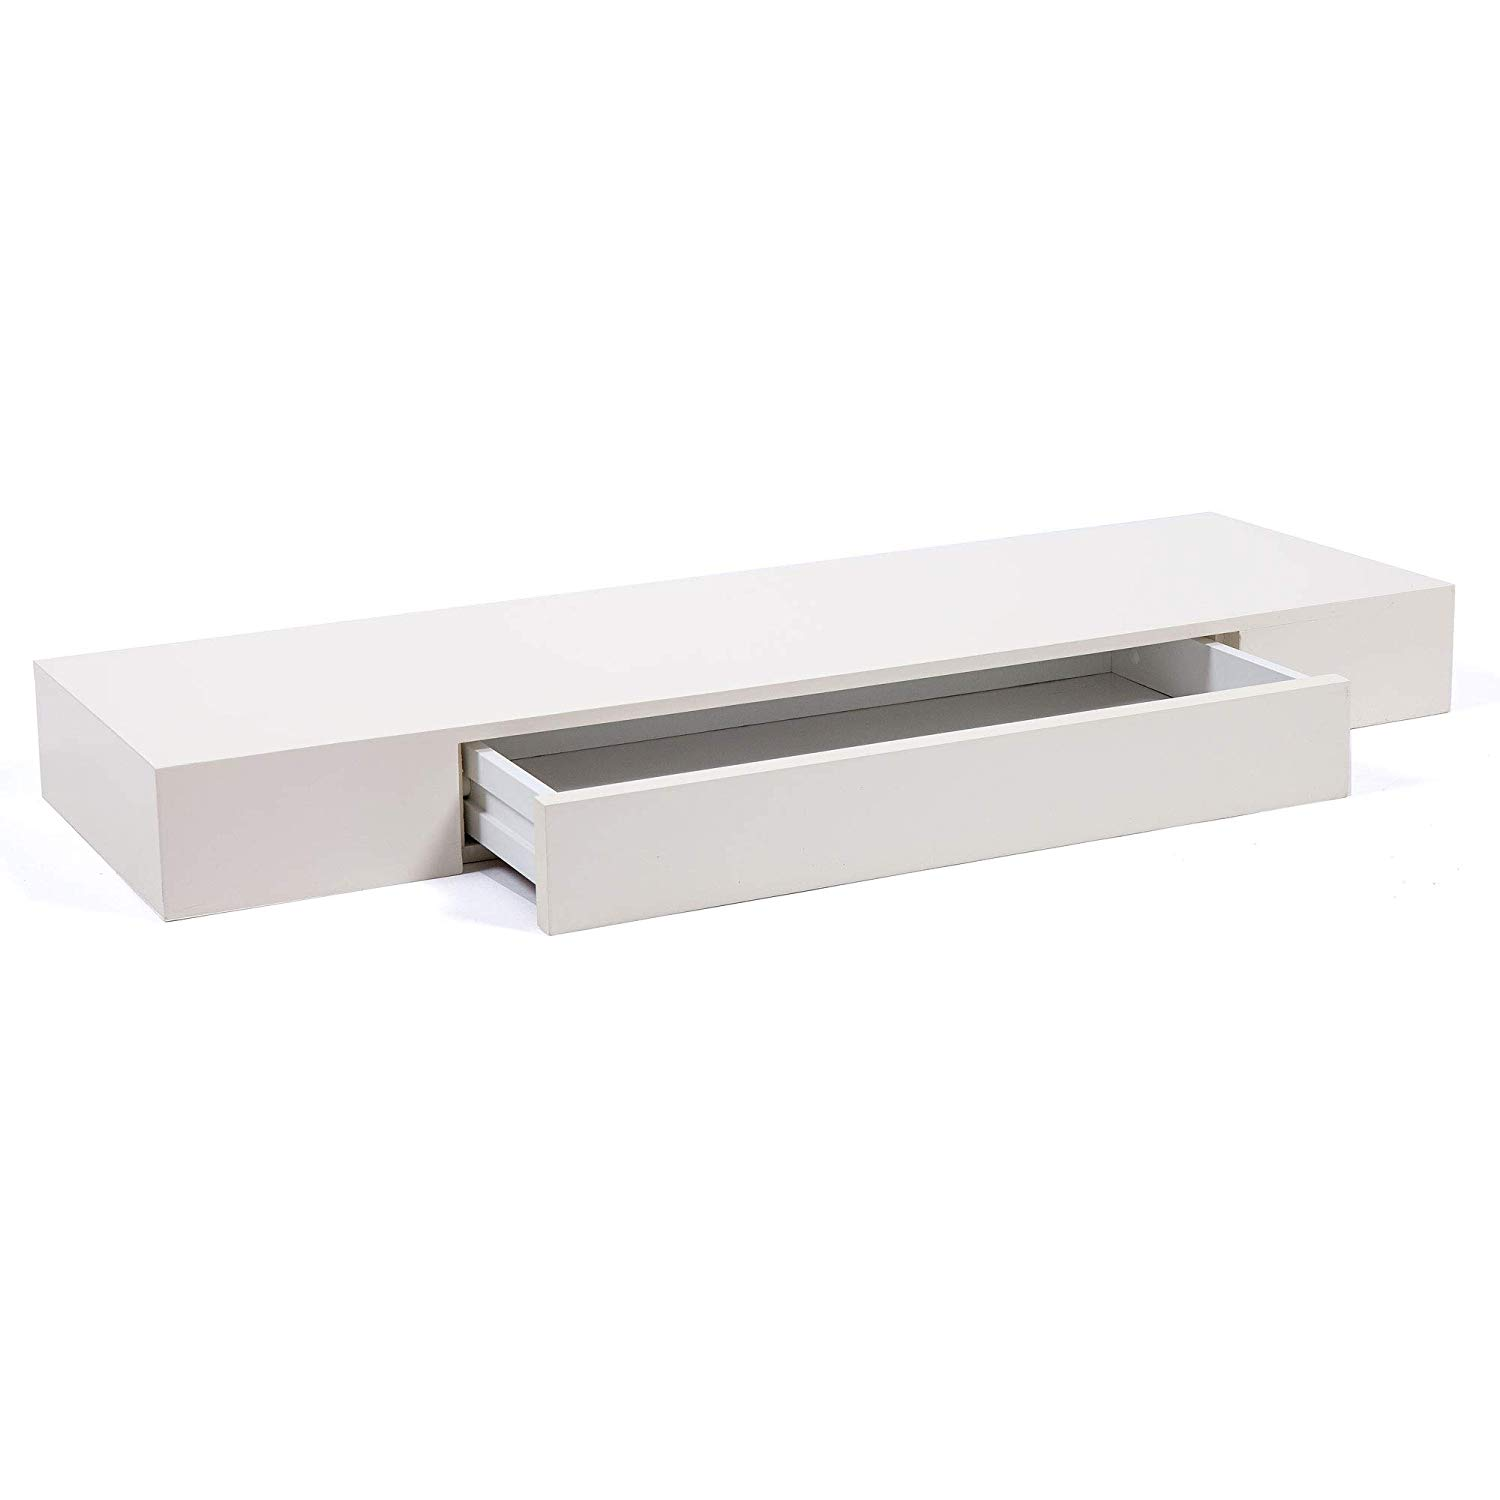 form chunky floating shelf drawer wall mounted bracket glossy with white display box storage shelving kitchen home ikea side table hidden gun case cable brackets wood plank